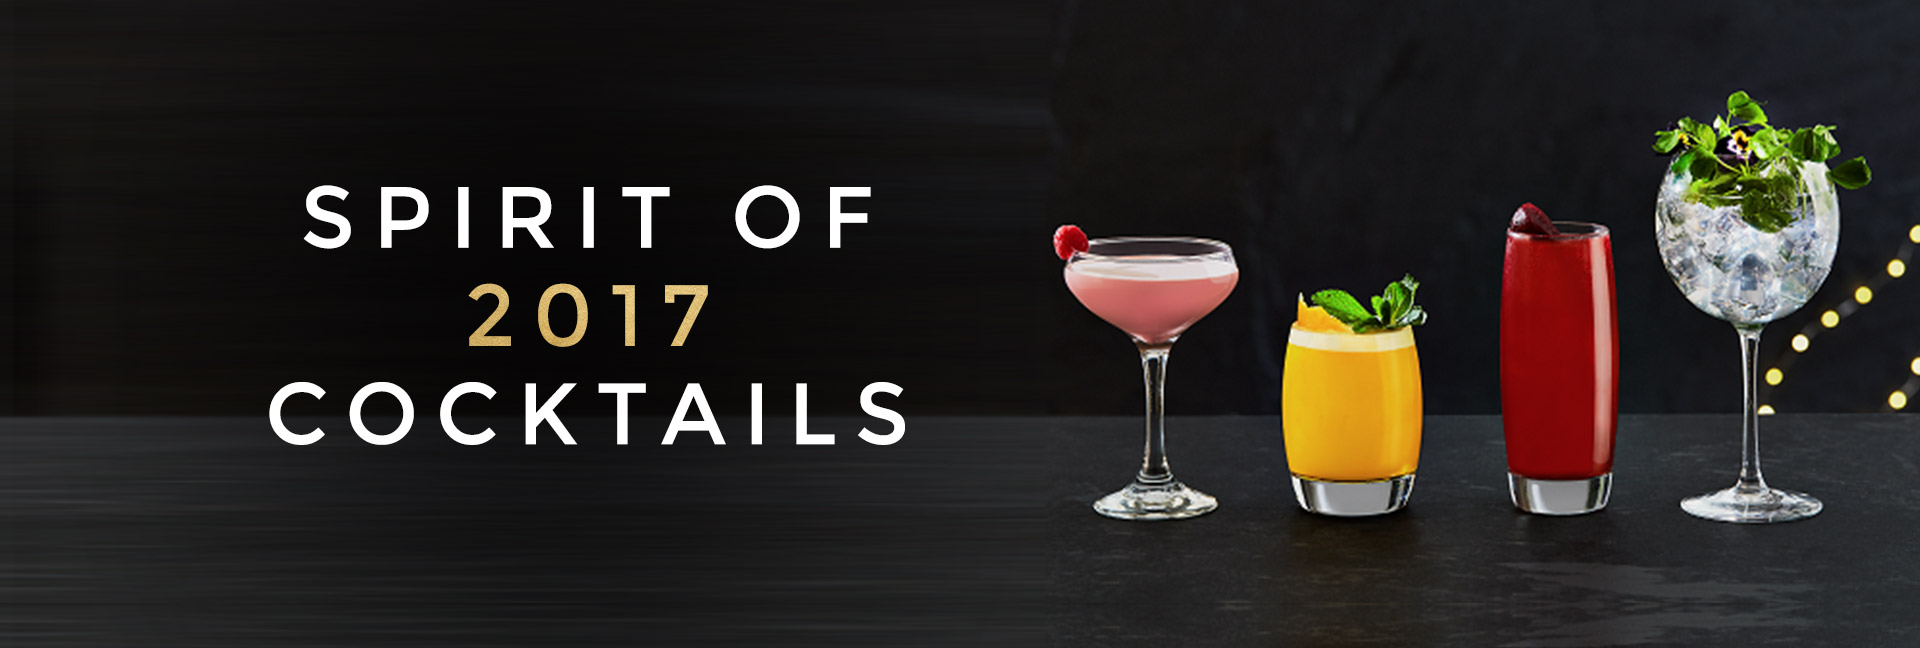 Spirit of 2017 cocktails at All Bar One Aberdeen